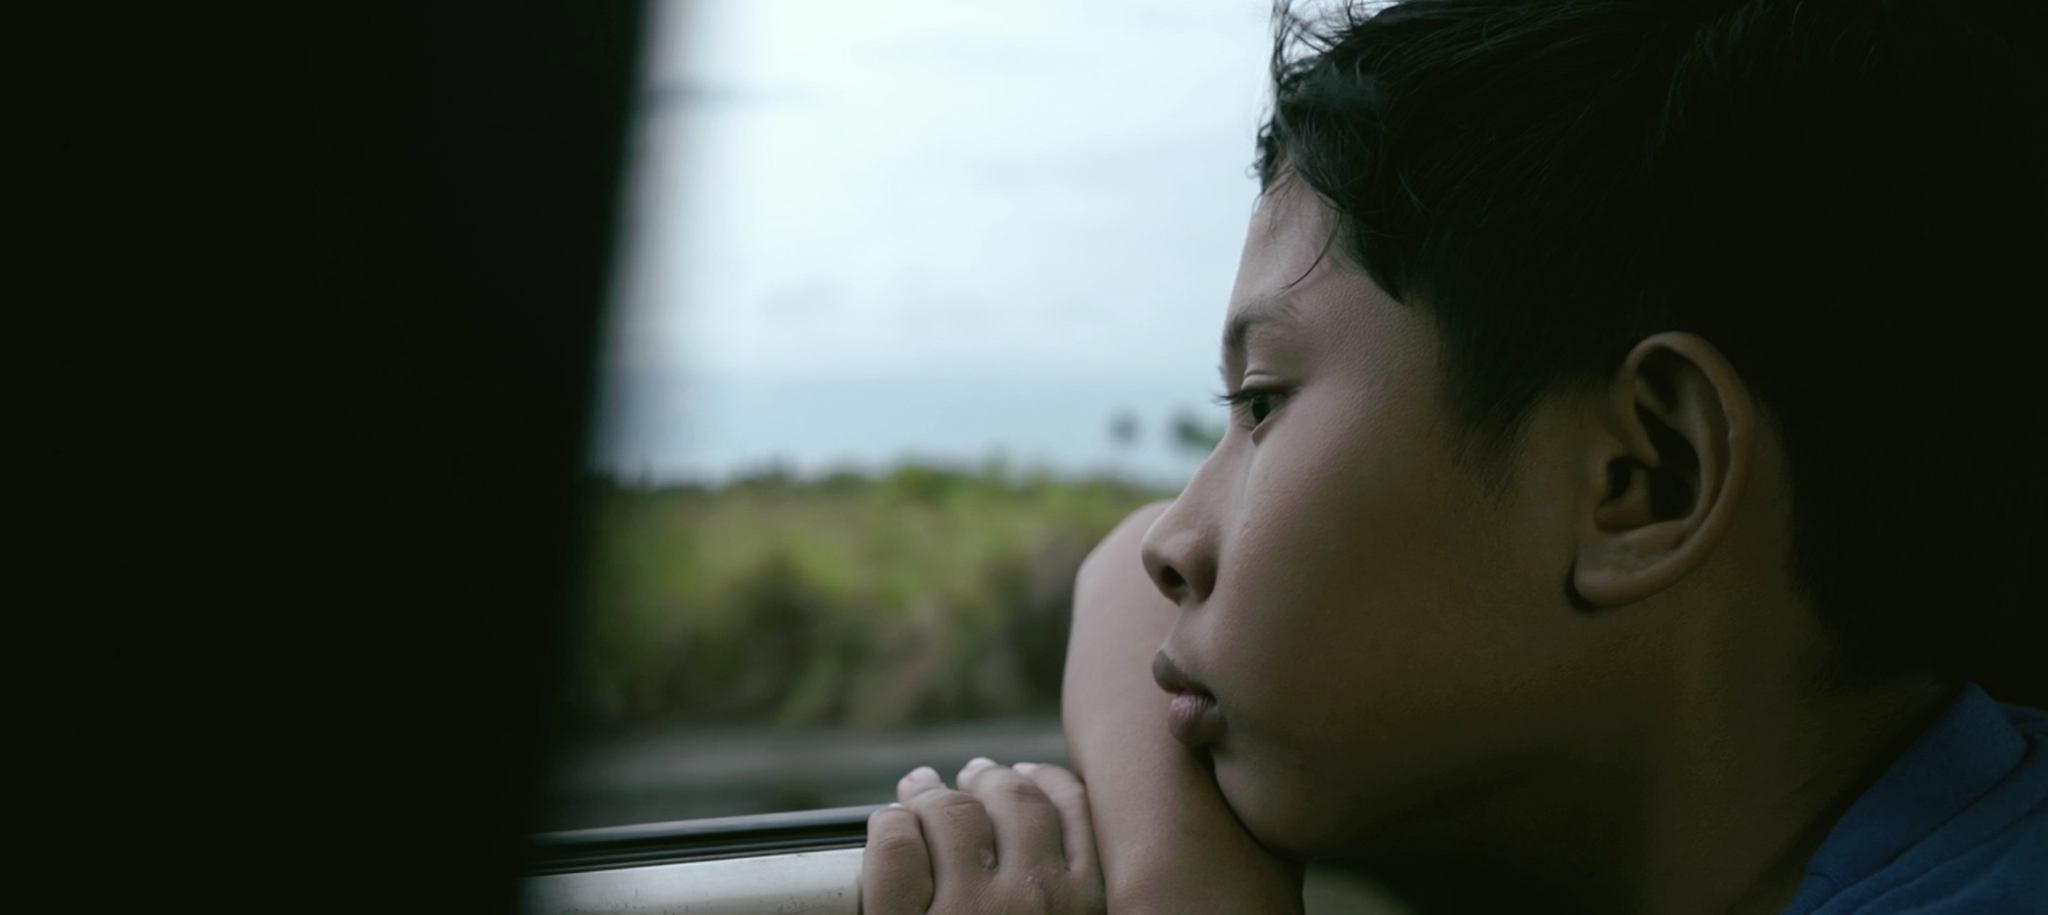 """Affendi Azizan / Malaysia / 2016 / Sarawakian Malay / 11min   """"Aman Nak Besar?"""" or """"When it's Time to Grow Up"""" depicts the story of a boy, Aman and his journey to undergo circumcision. Accompanied by his parents, Aman observes and learns through this special day of him in a seemingly mundane everyday life.   Director:  Affendi Azizan, an independent filmmaker from Sarawak, Malaysia. His best achievement was winning the special jury award in 1st Creative Visual Awards organised by Universiti Sains Malaysia in 2012 for his short film called """"Buatan Malaysia"""". After 4 years, he grab back a seat as a director and direct a short film title """"Aman Nak Besar?"""" the title in Malay language or in English call """"When it's Time to Grow Up""""."""